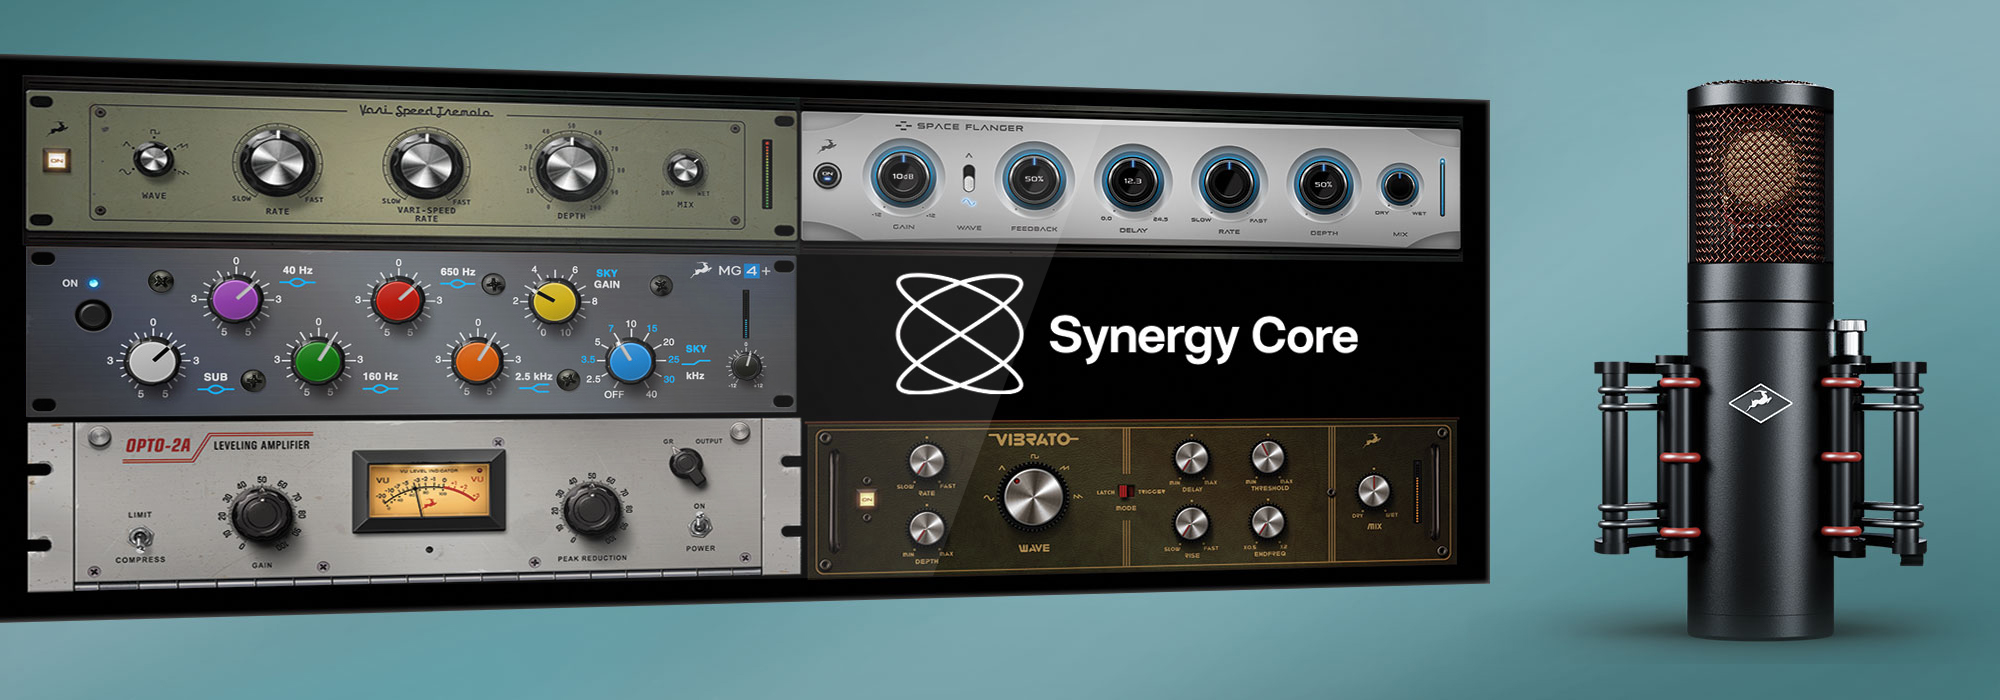 Edge Go Joins the Synergy Core Line-up with the Added Fire Power of 5 New Vocal Effects